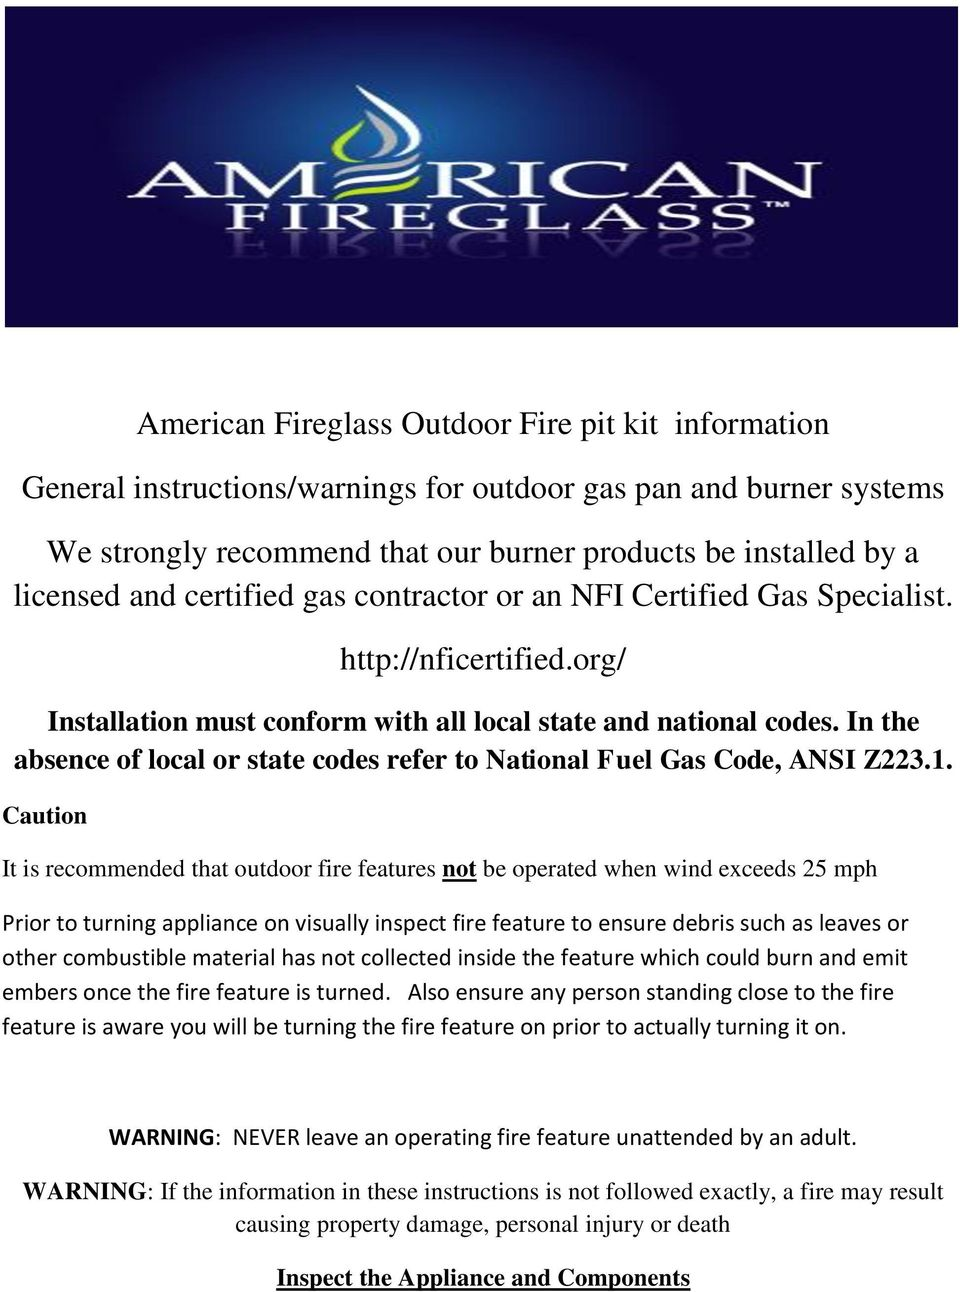 In the absence of local or state codes refer to National Fuel Gas Code, ANSI Z223.1.